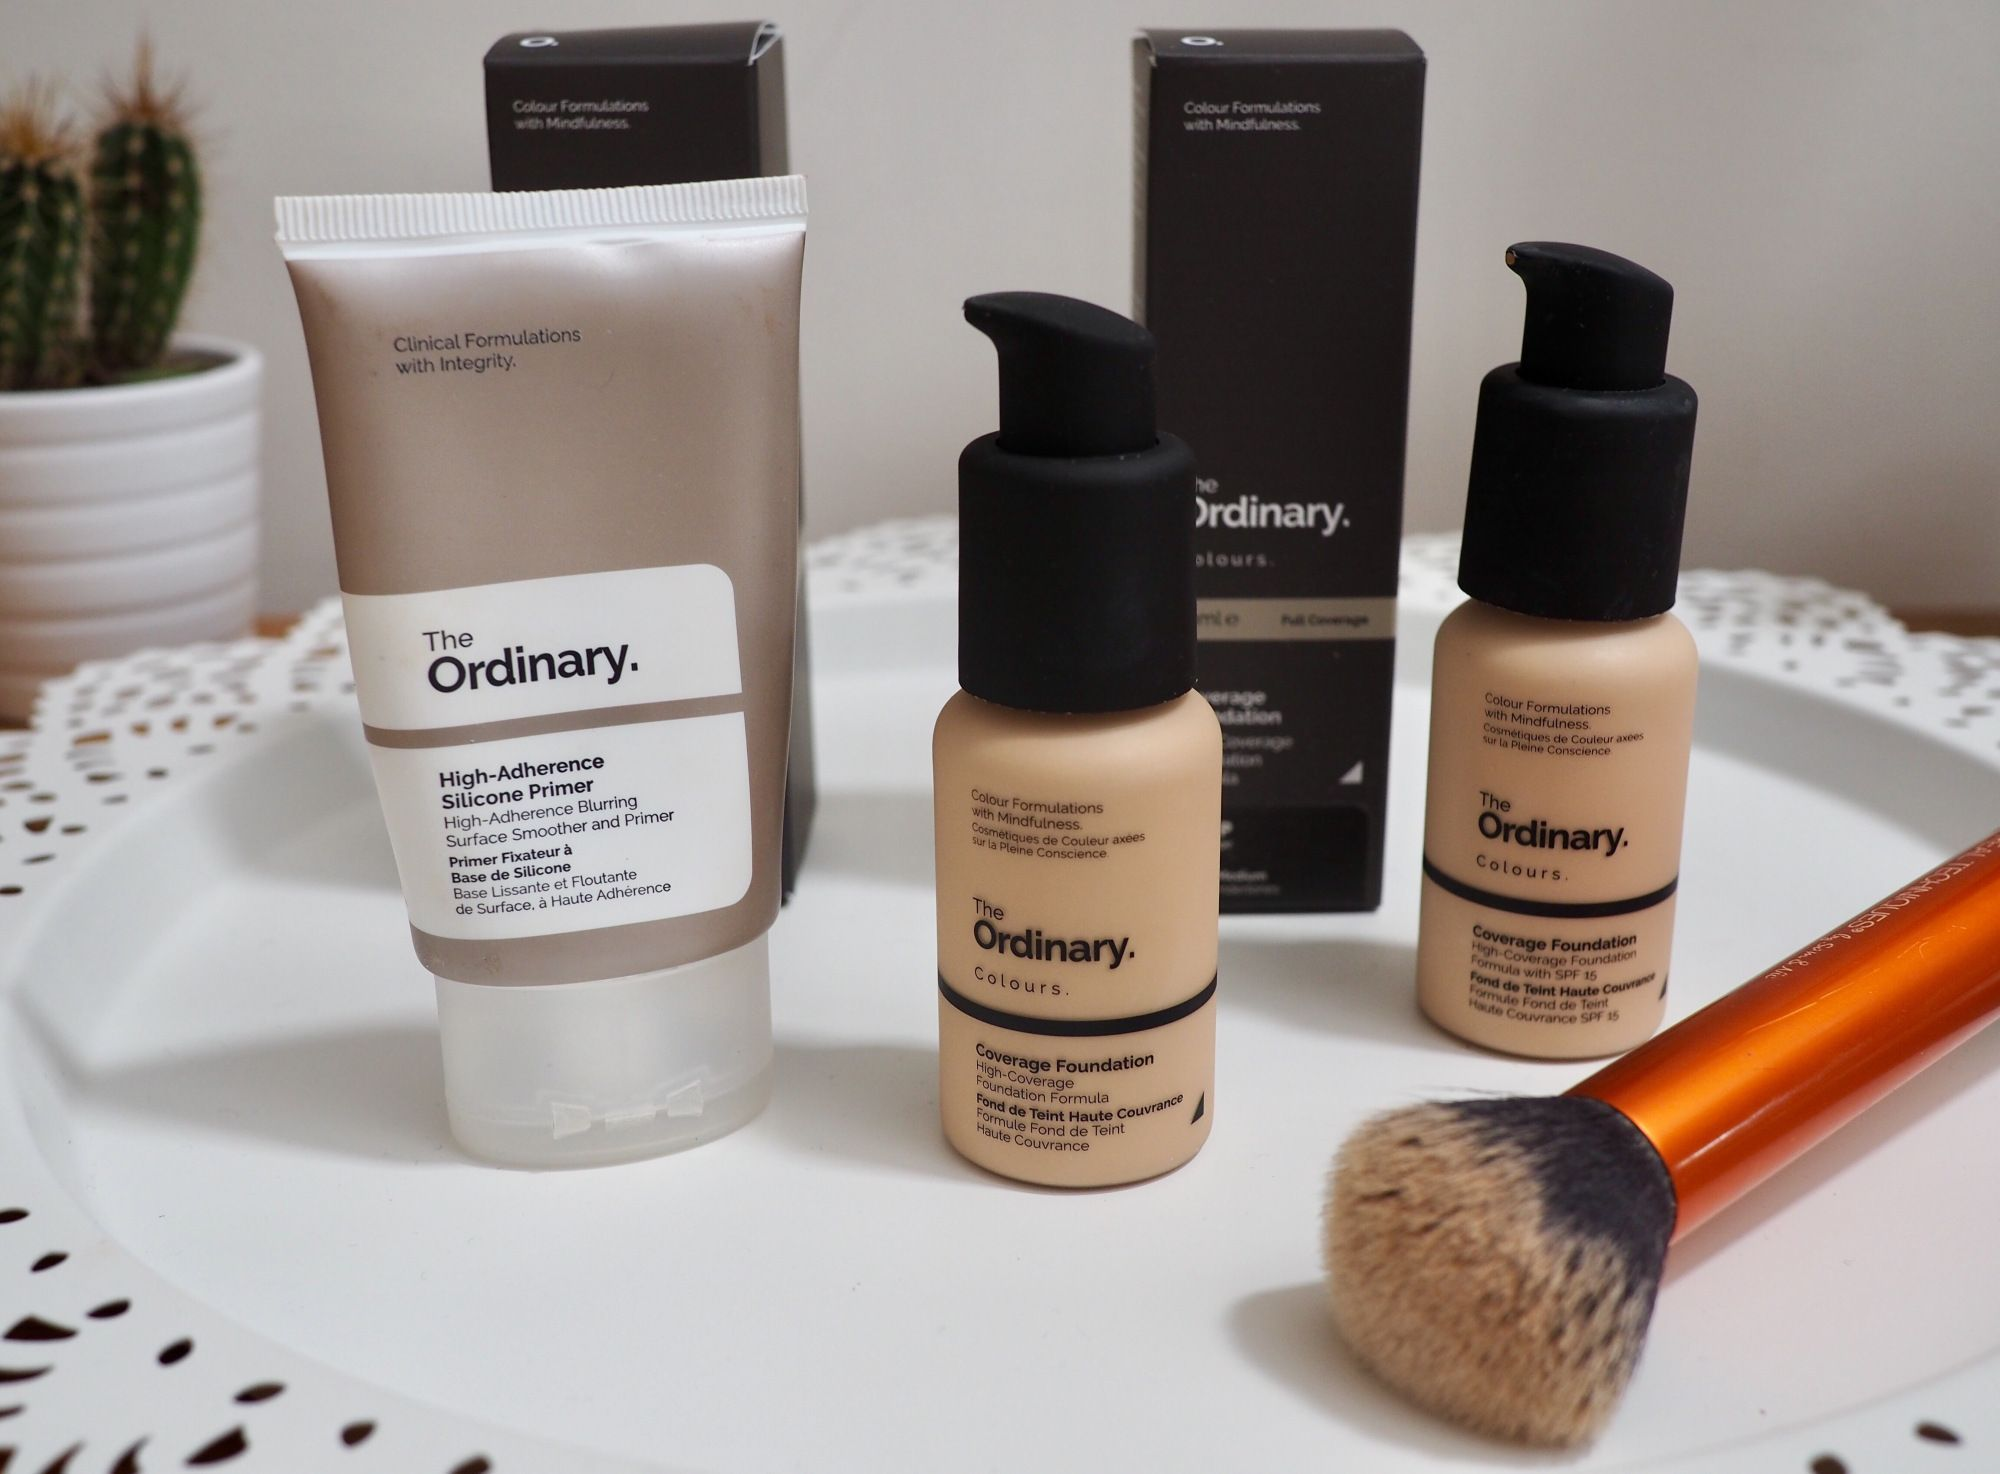 The Ordinary Colours Coverage Foundation Review